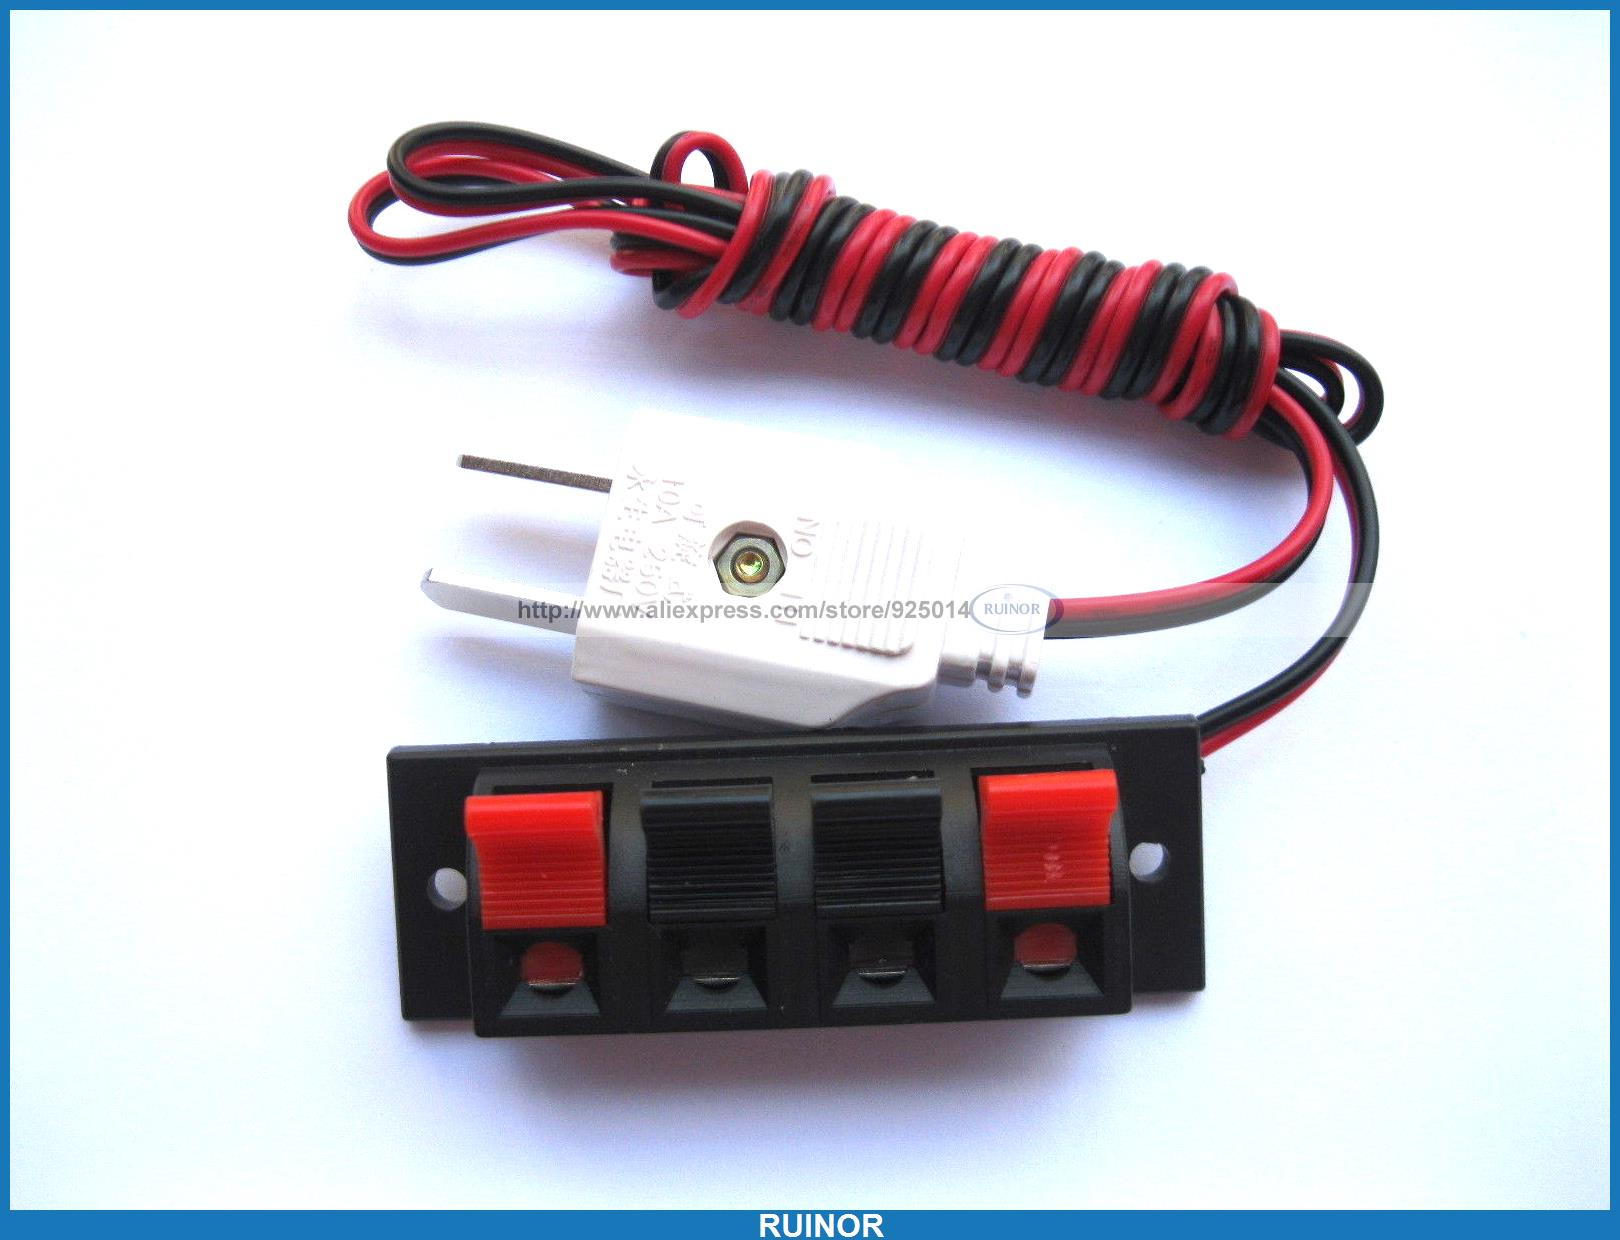 20 Pcs Speaker Terminal Board Spring Loaded 4 Way with Adapter Plug 1.5M<br><br>Aliexpress